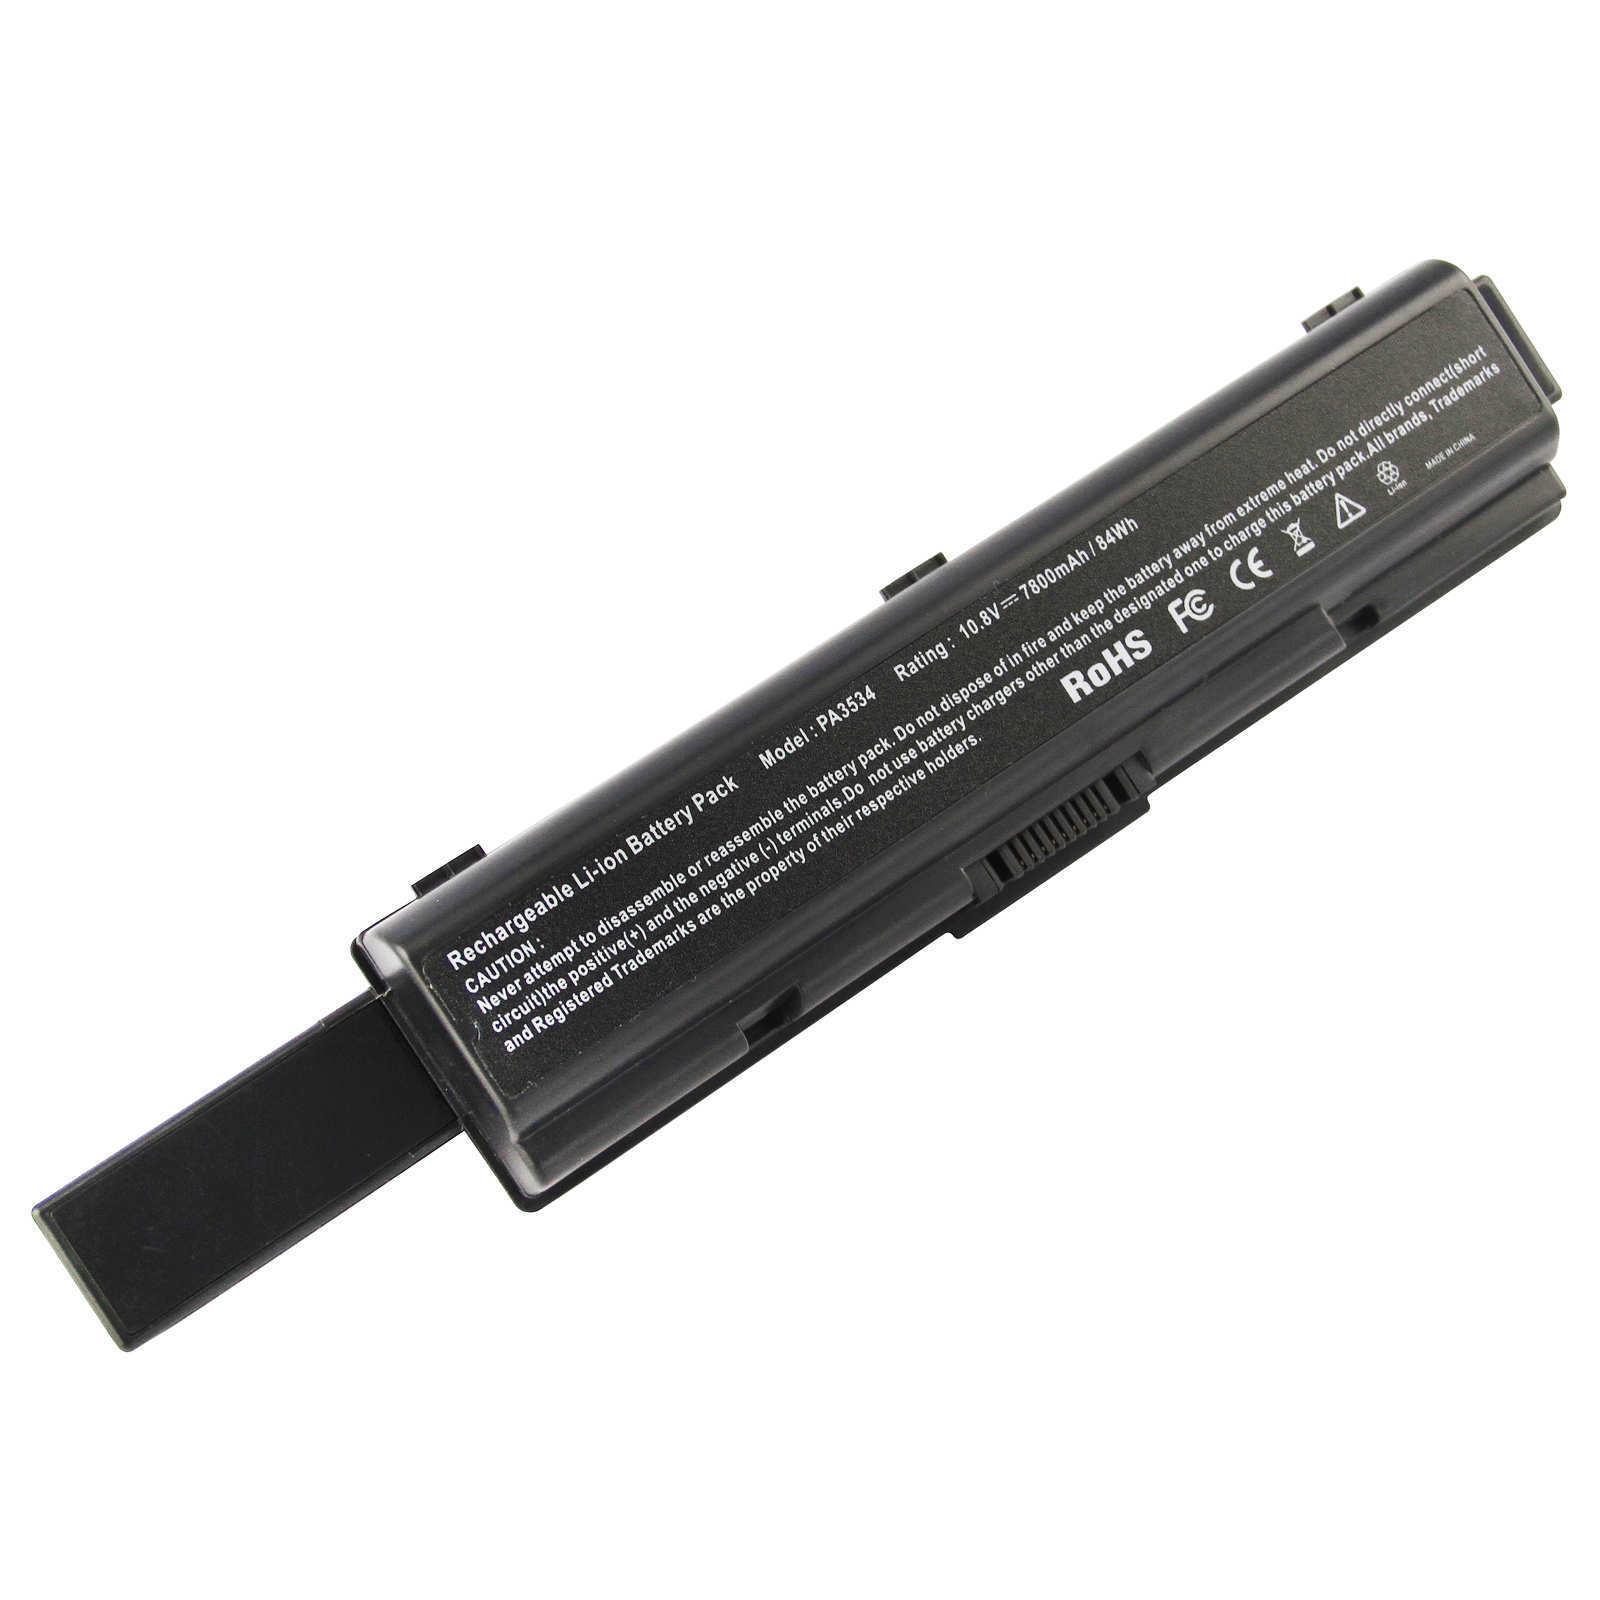 Replacement Toshiba Satellite A305-S6834 Battery